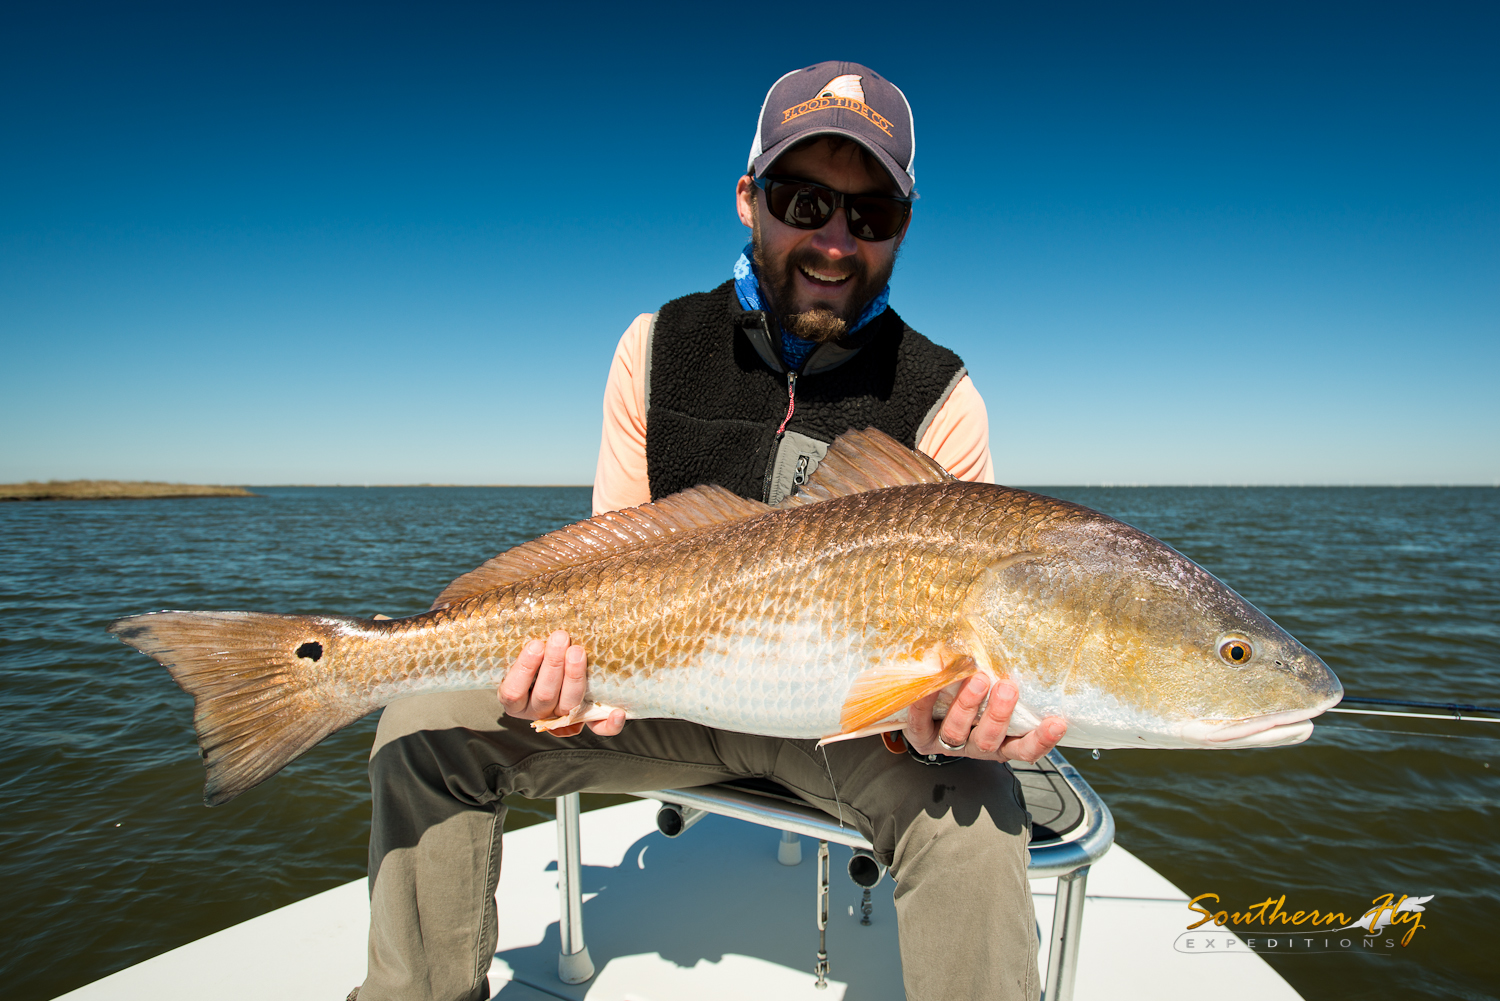 Fly fishing new orleans best charter Southern Fly Expeditions